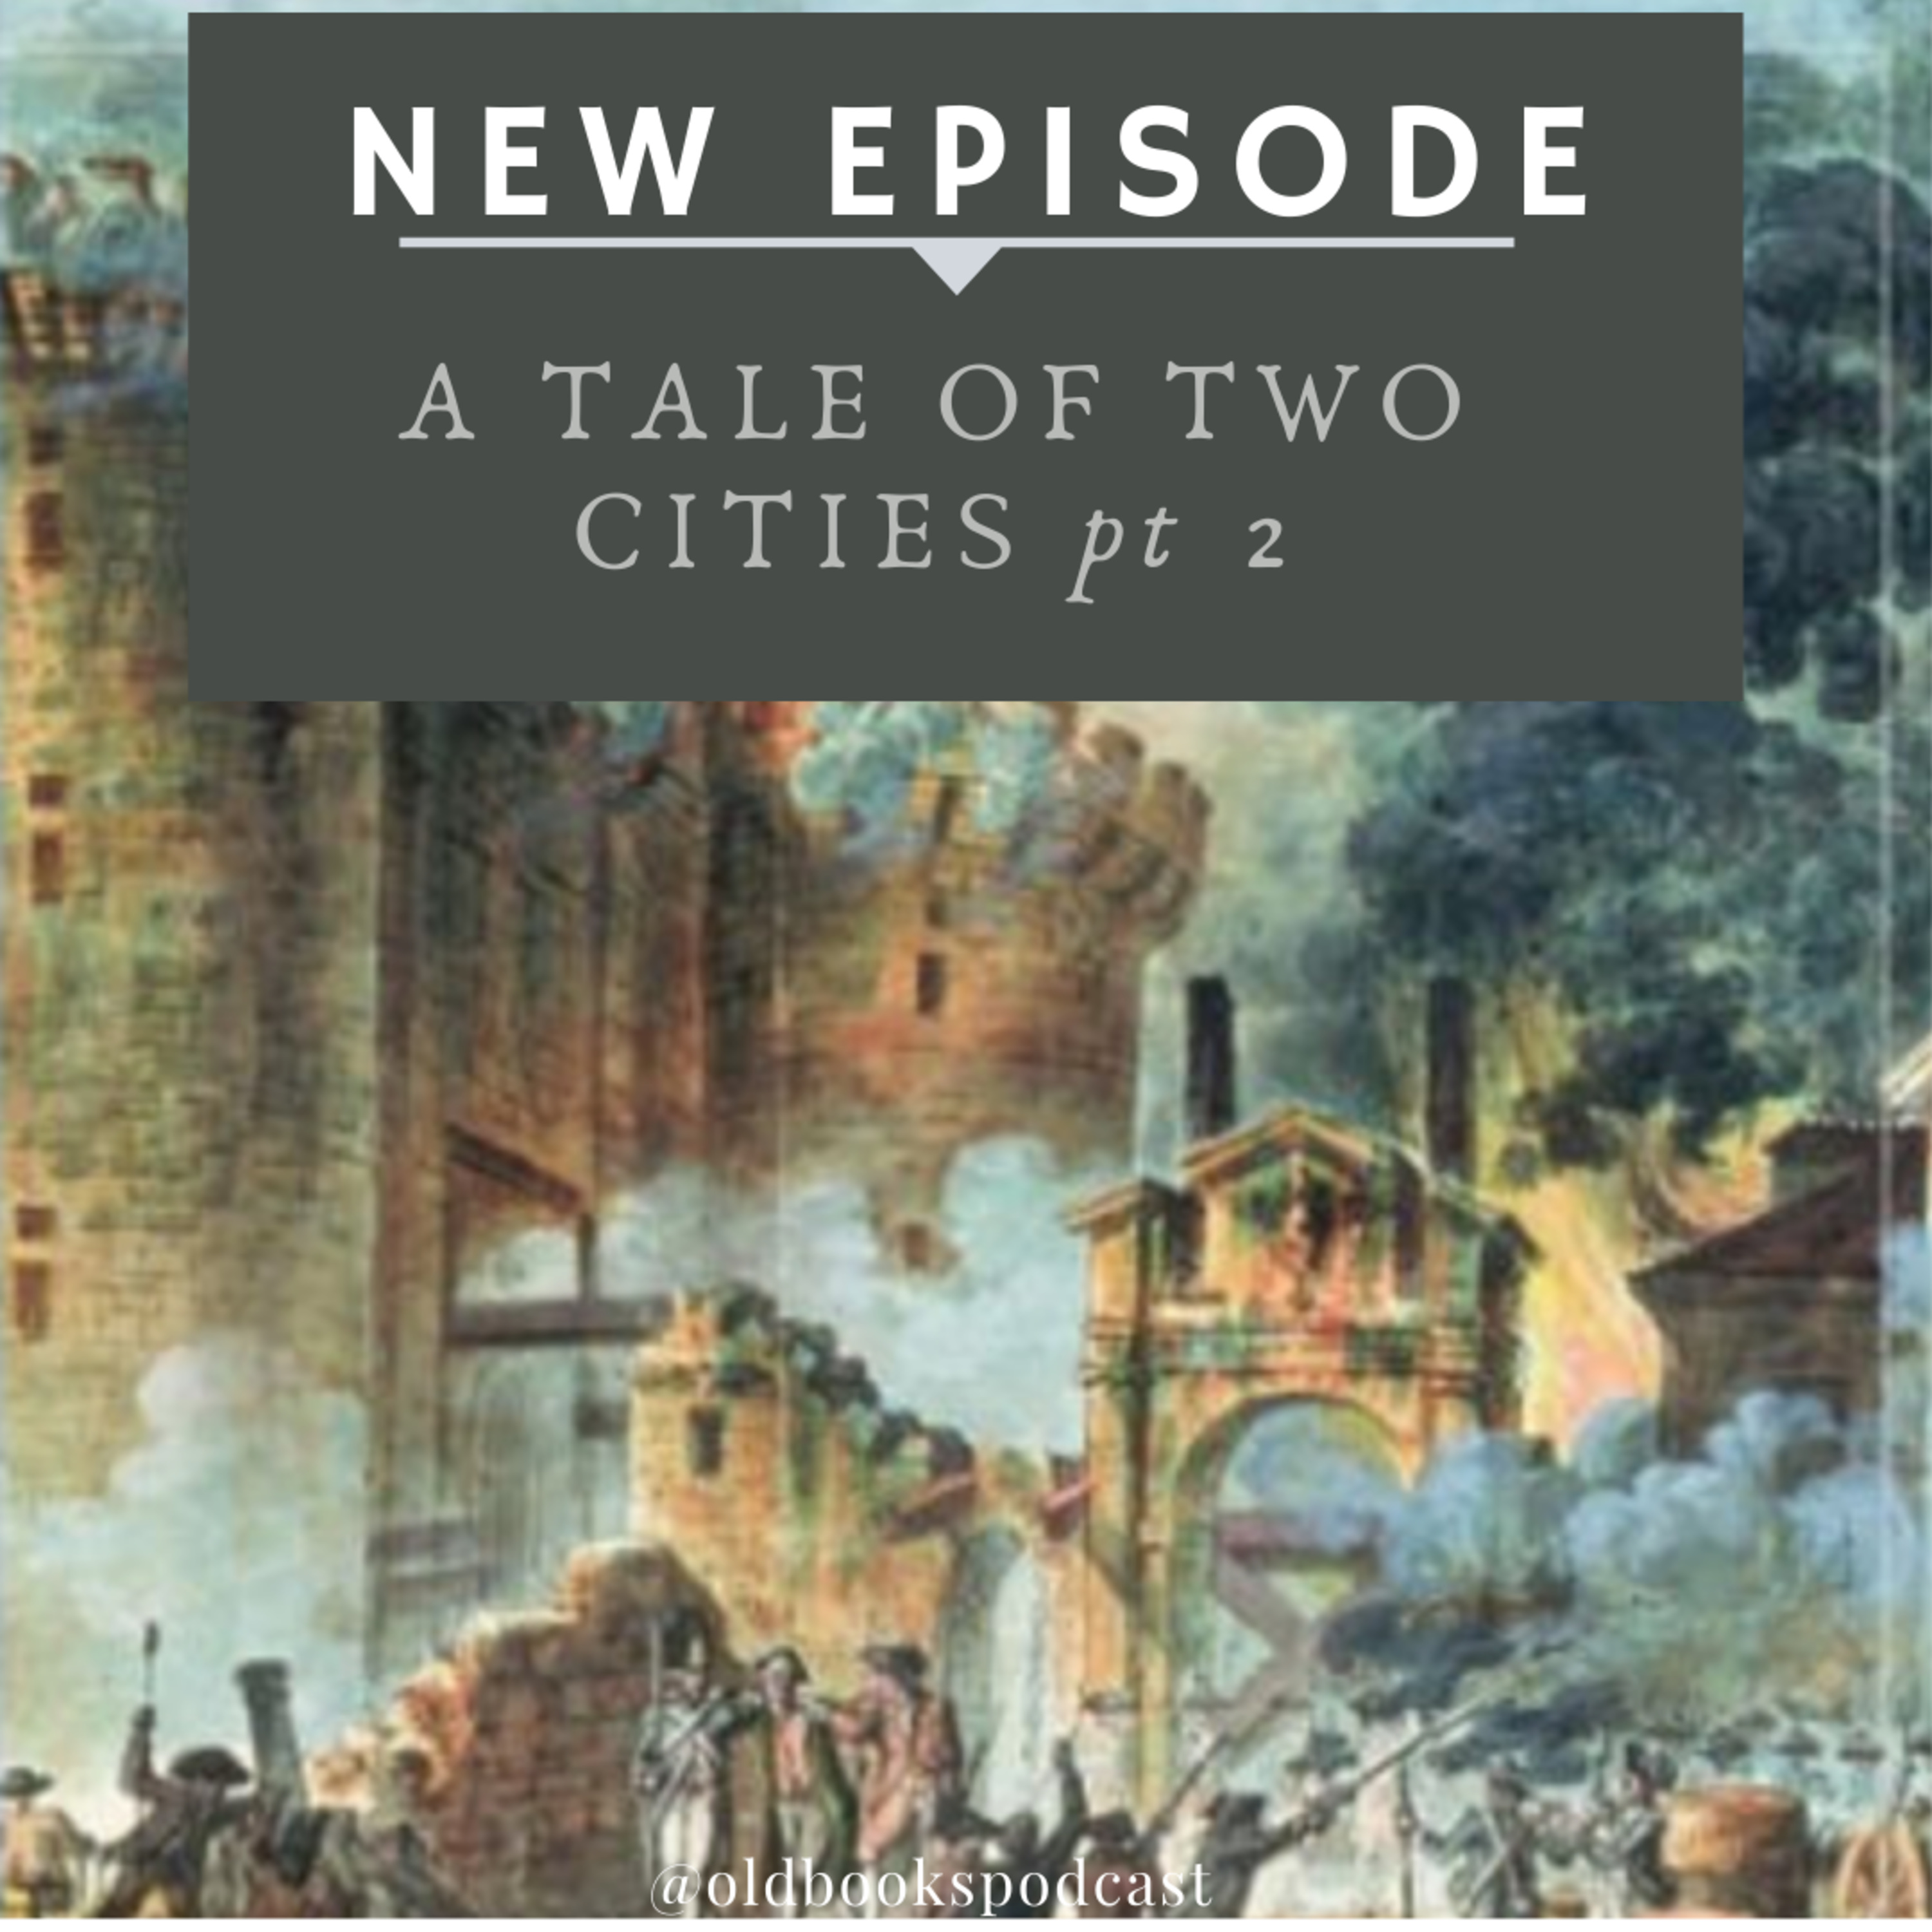 Ep 24 - A Tale of Two Cities pt 2